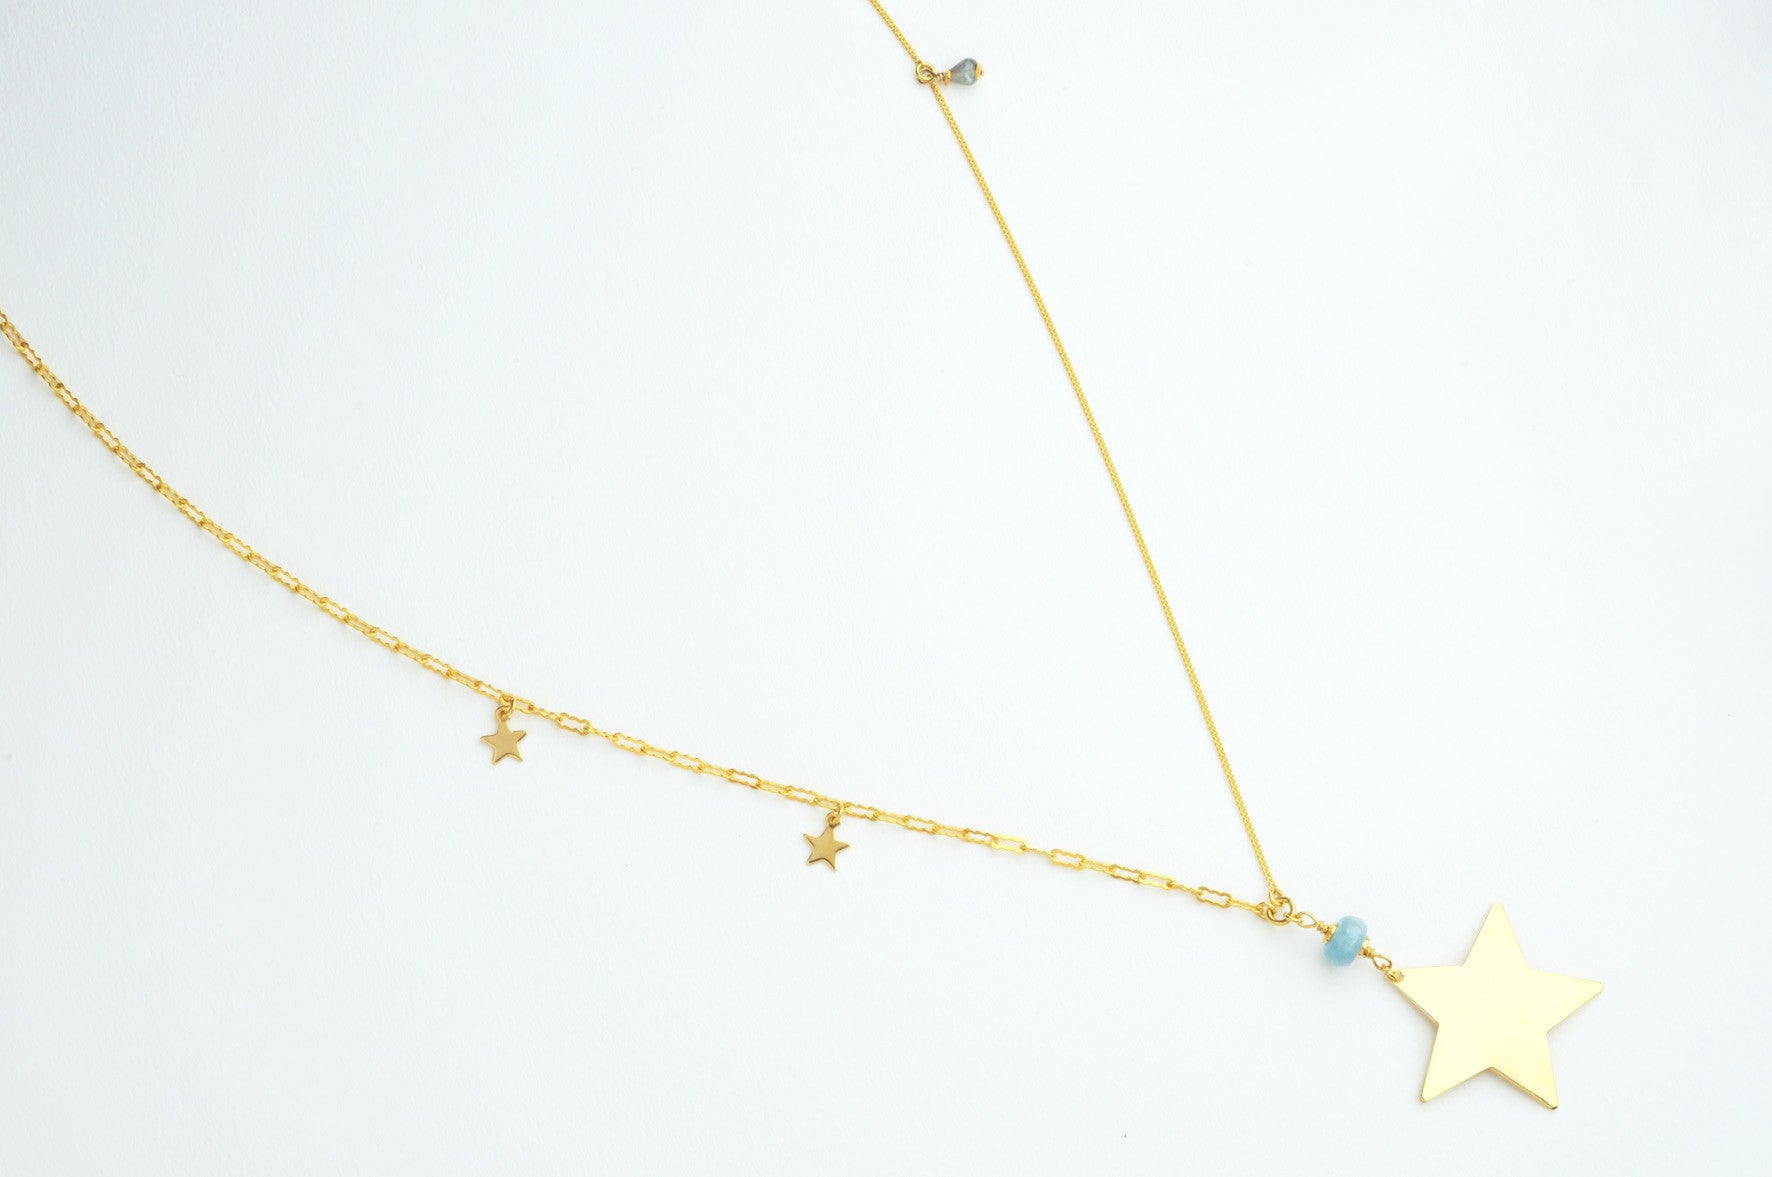 ....Kette BIG STAR large vergoldet..Necklace BIG STAR large gold plated....